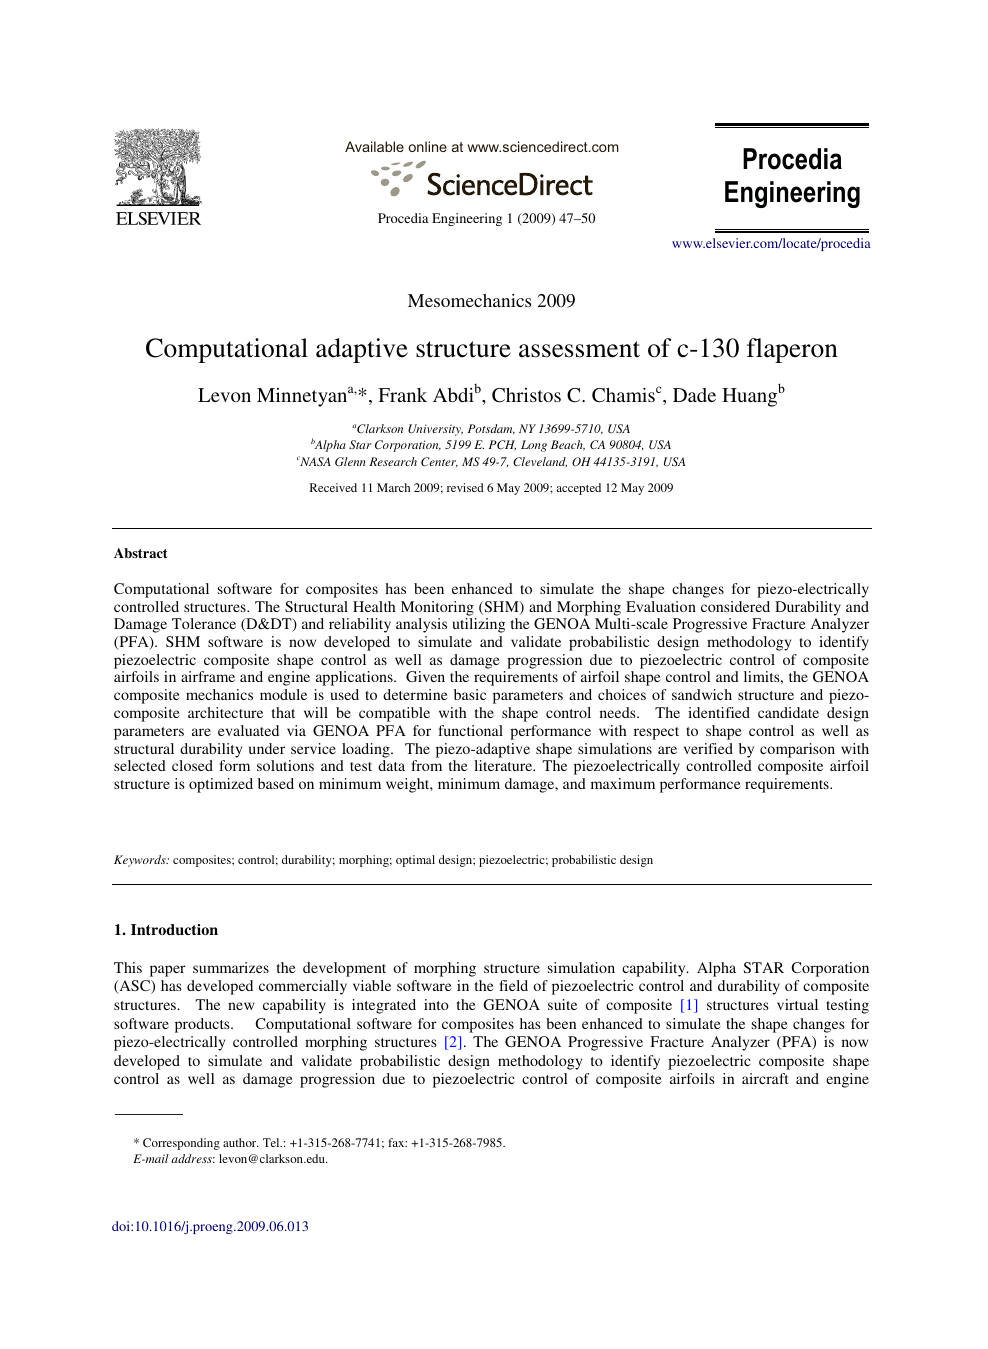 Computational adaptive structure assessment of c-130 flaperon